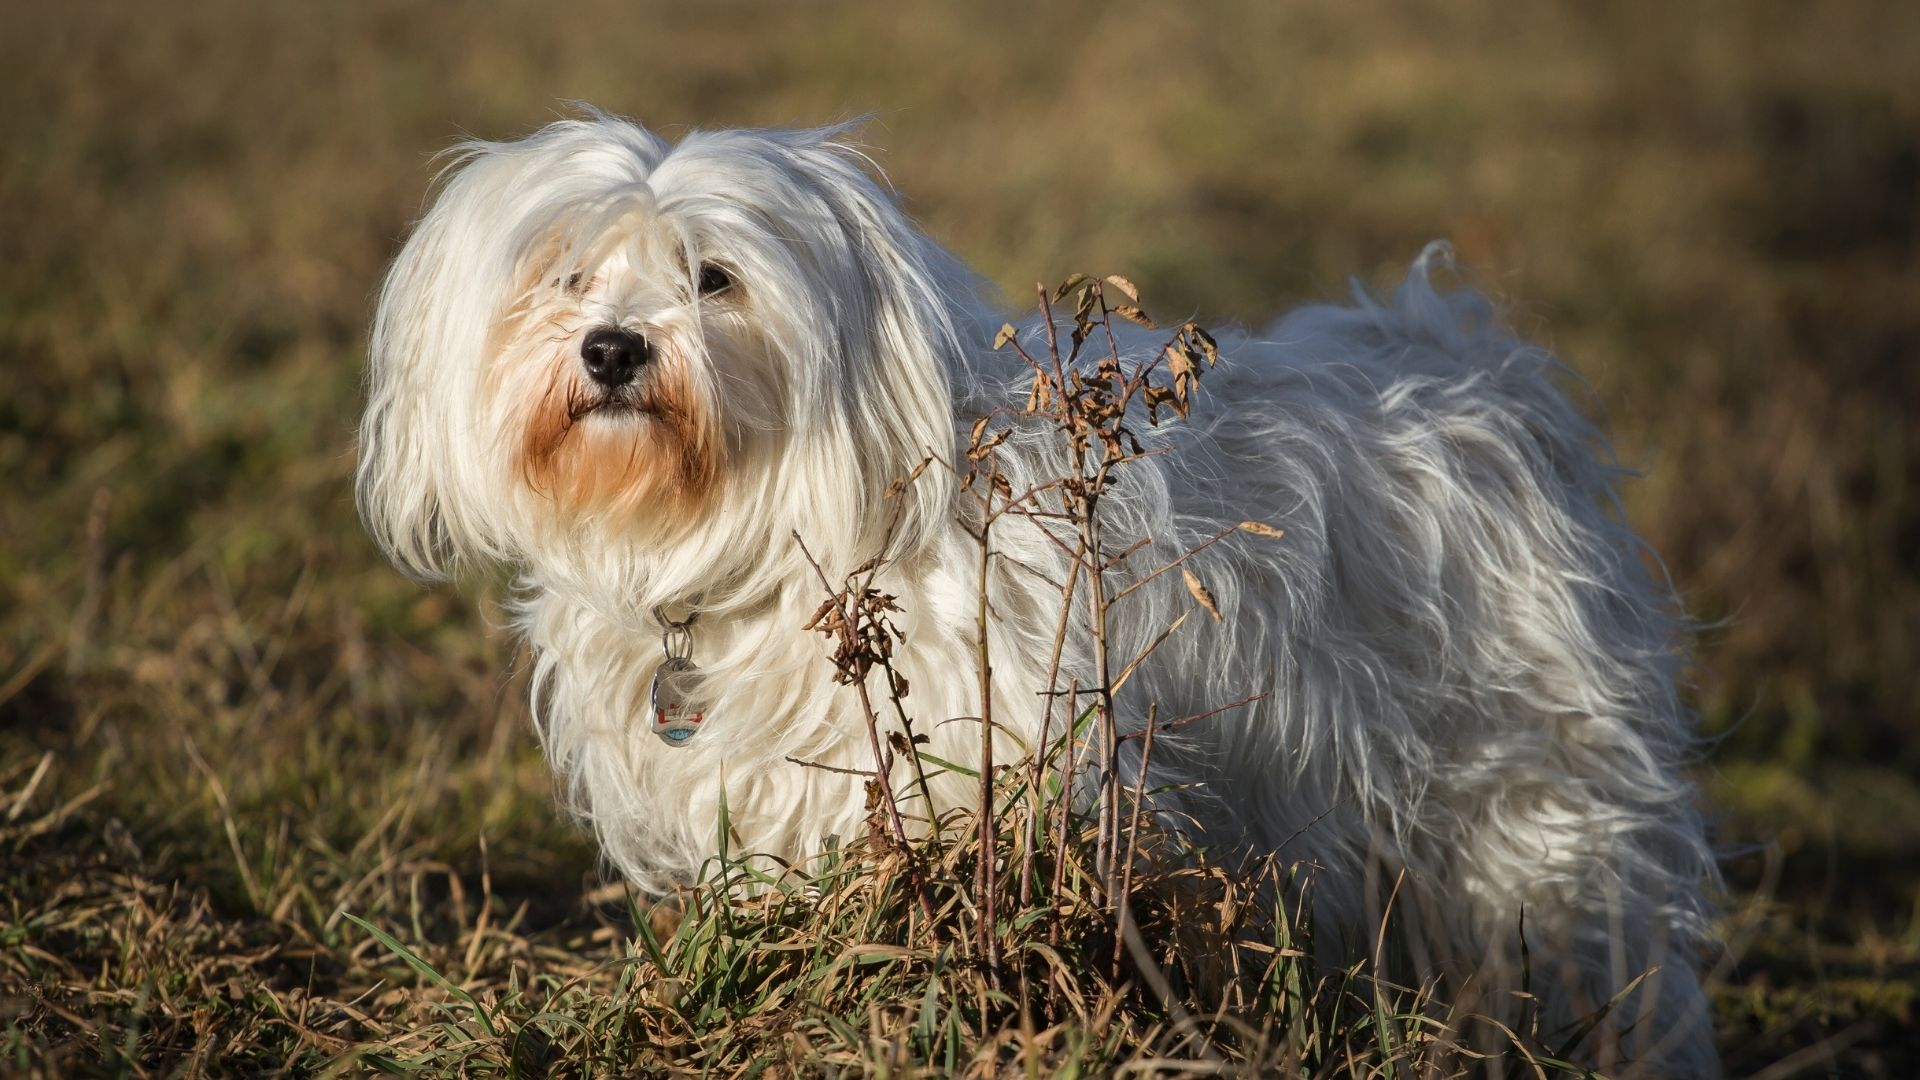 Havanese Dog Breed Guide: Facts, Health & Care